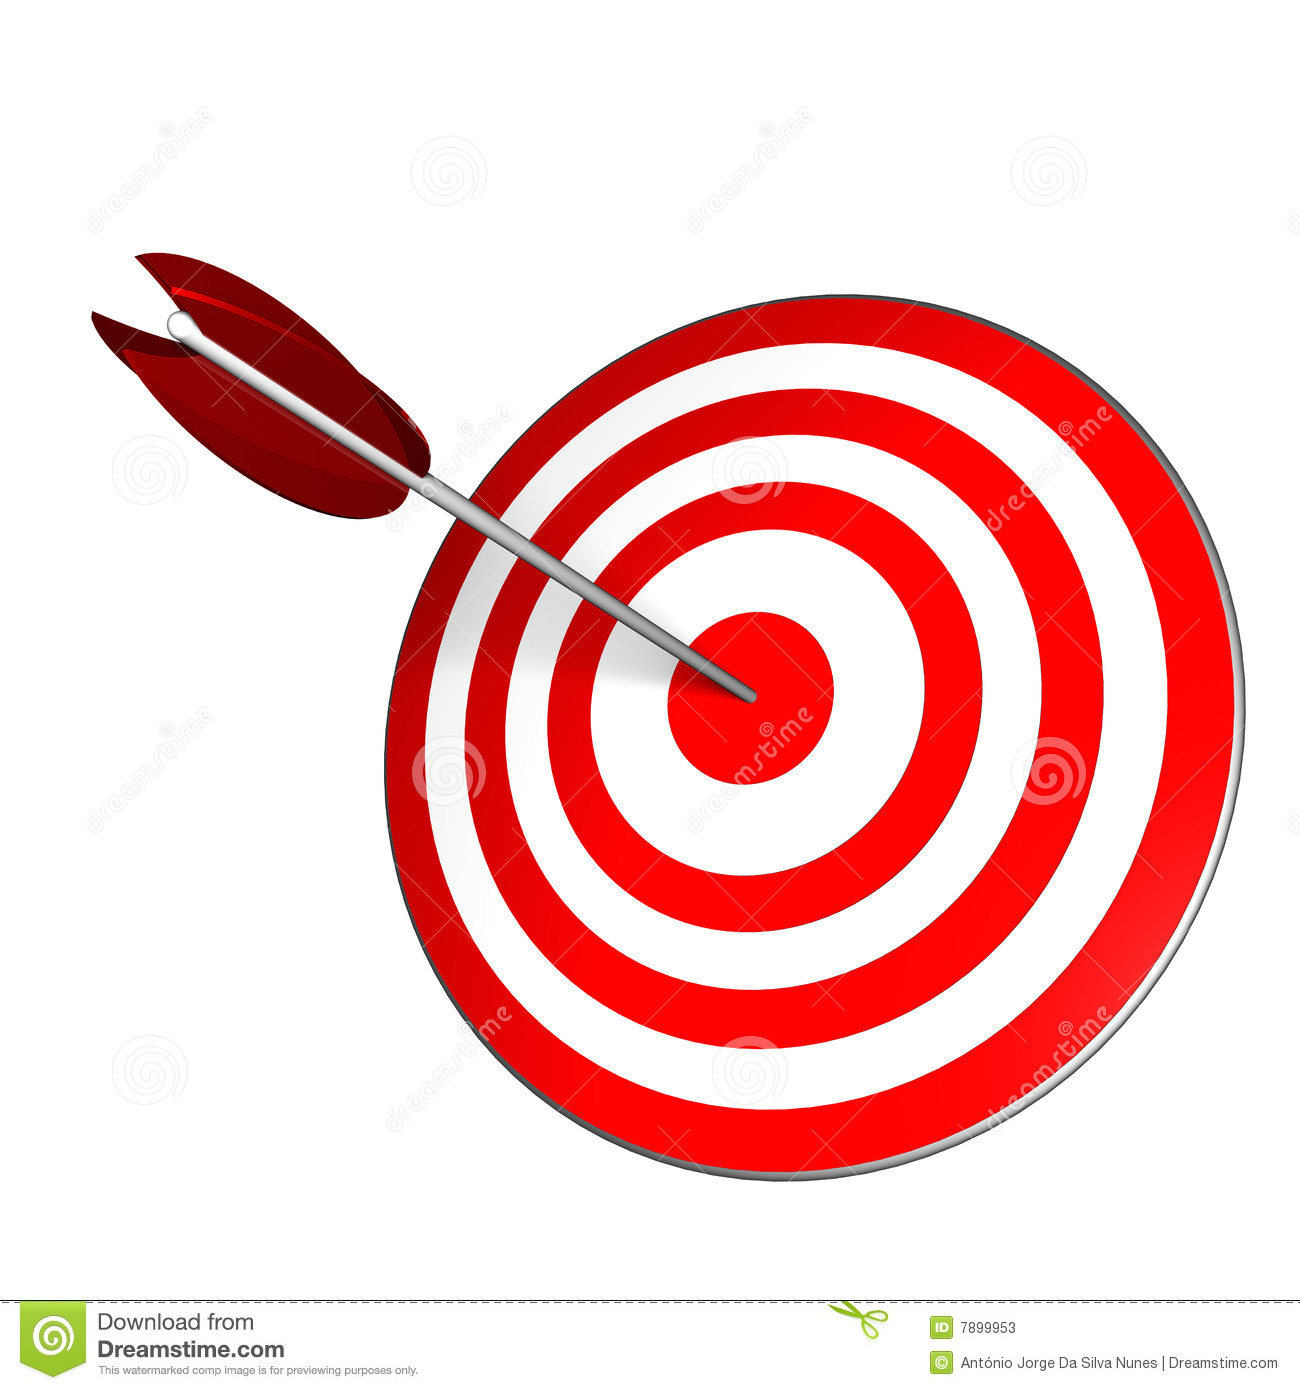 Download image Bullseye With Arrow Clip Art PC, Android, iPhone and ...